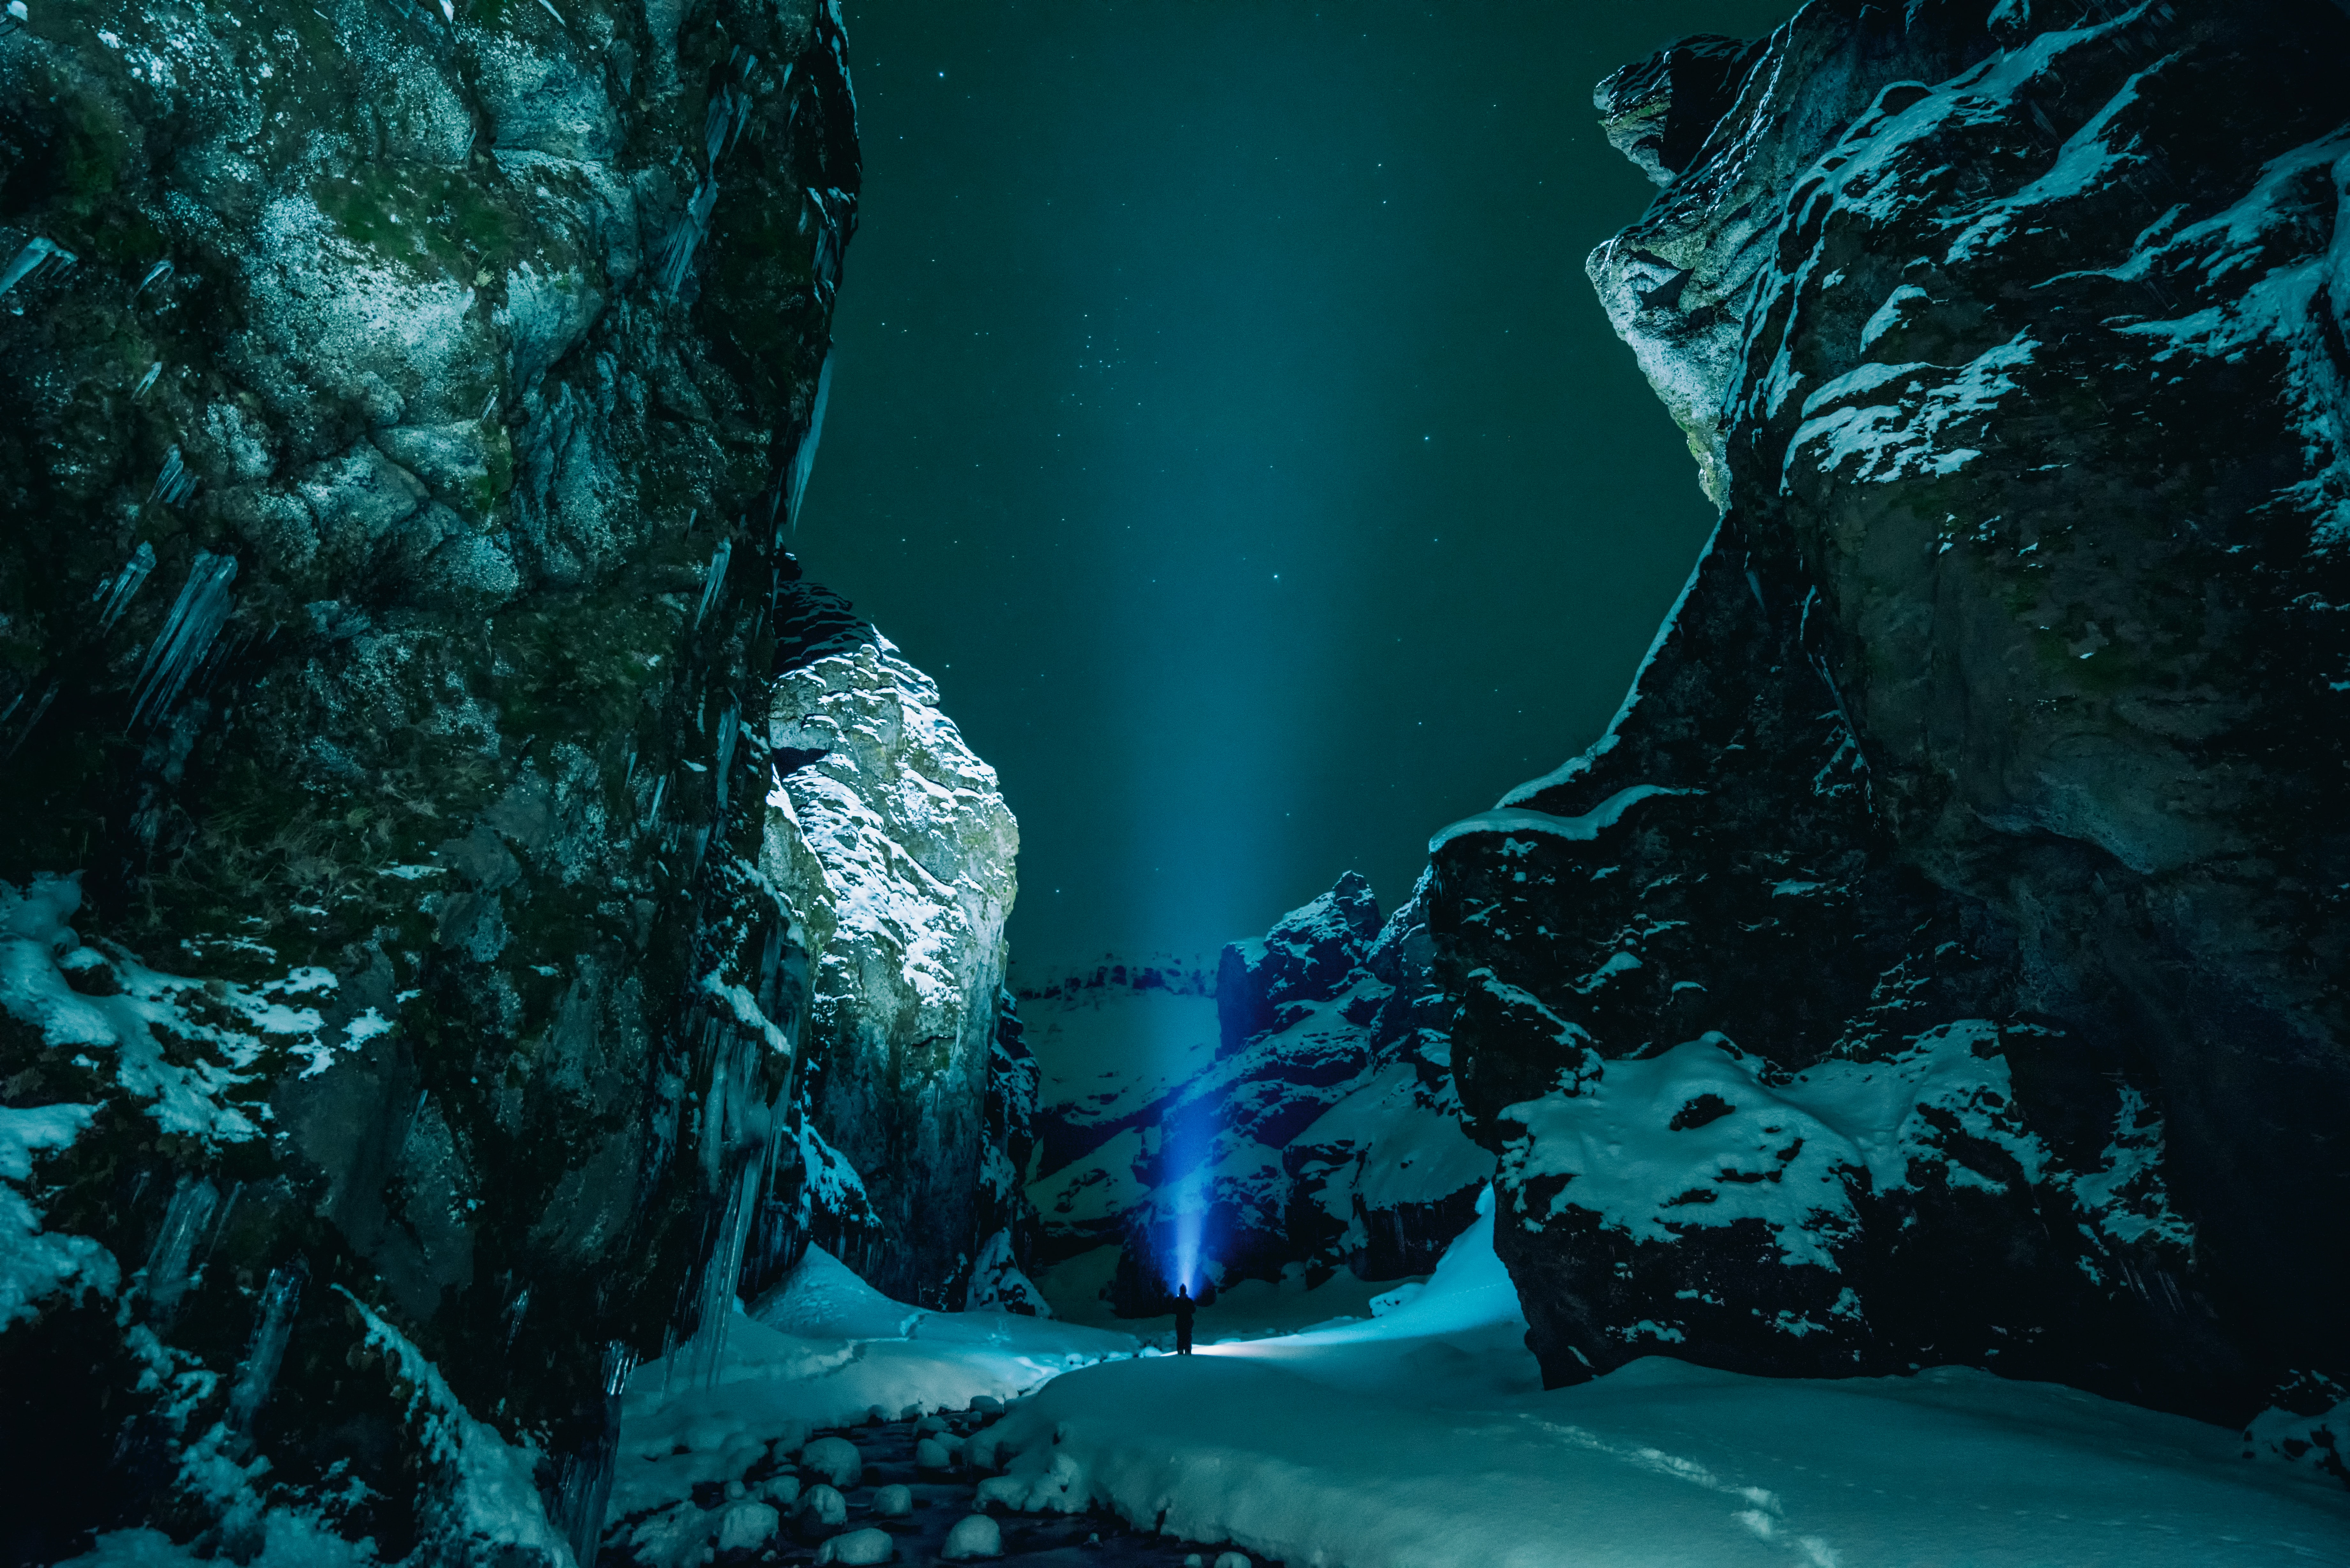 A blue spotlight put onto the starlit sky at the bottom of rock formations in Stakkholtsgjá, Iceland